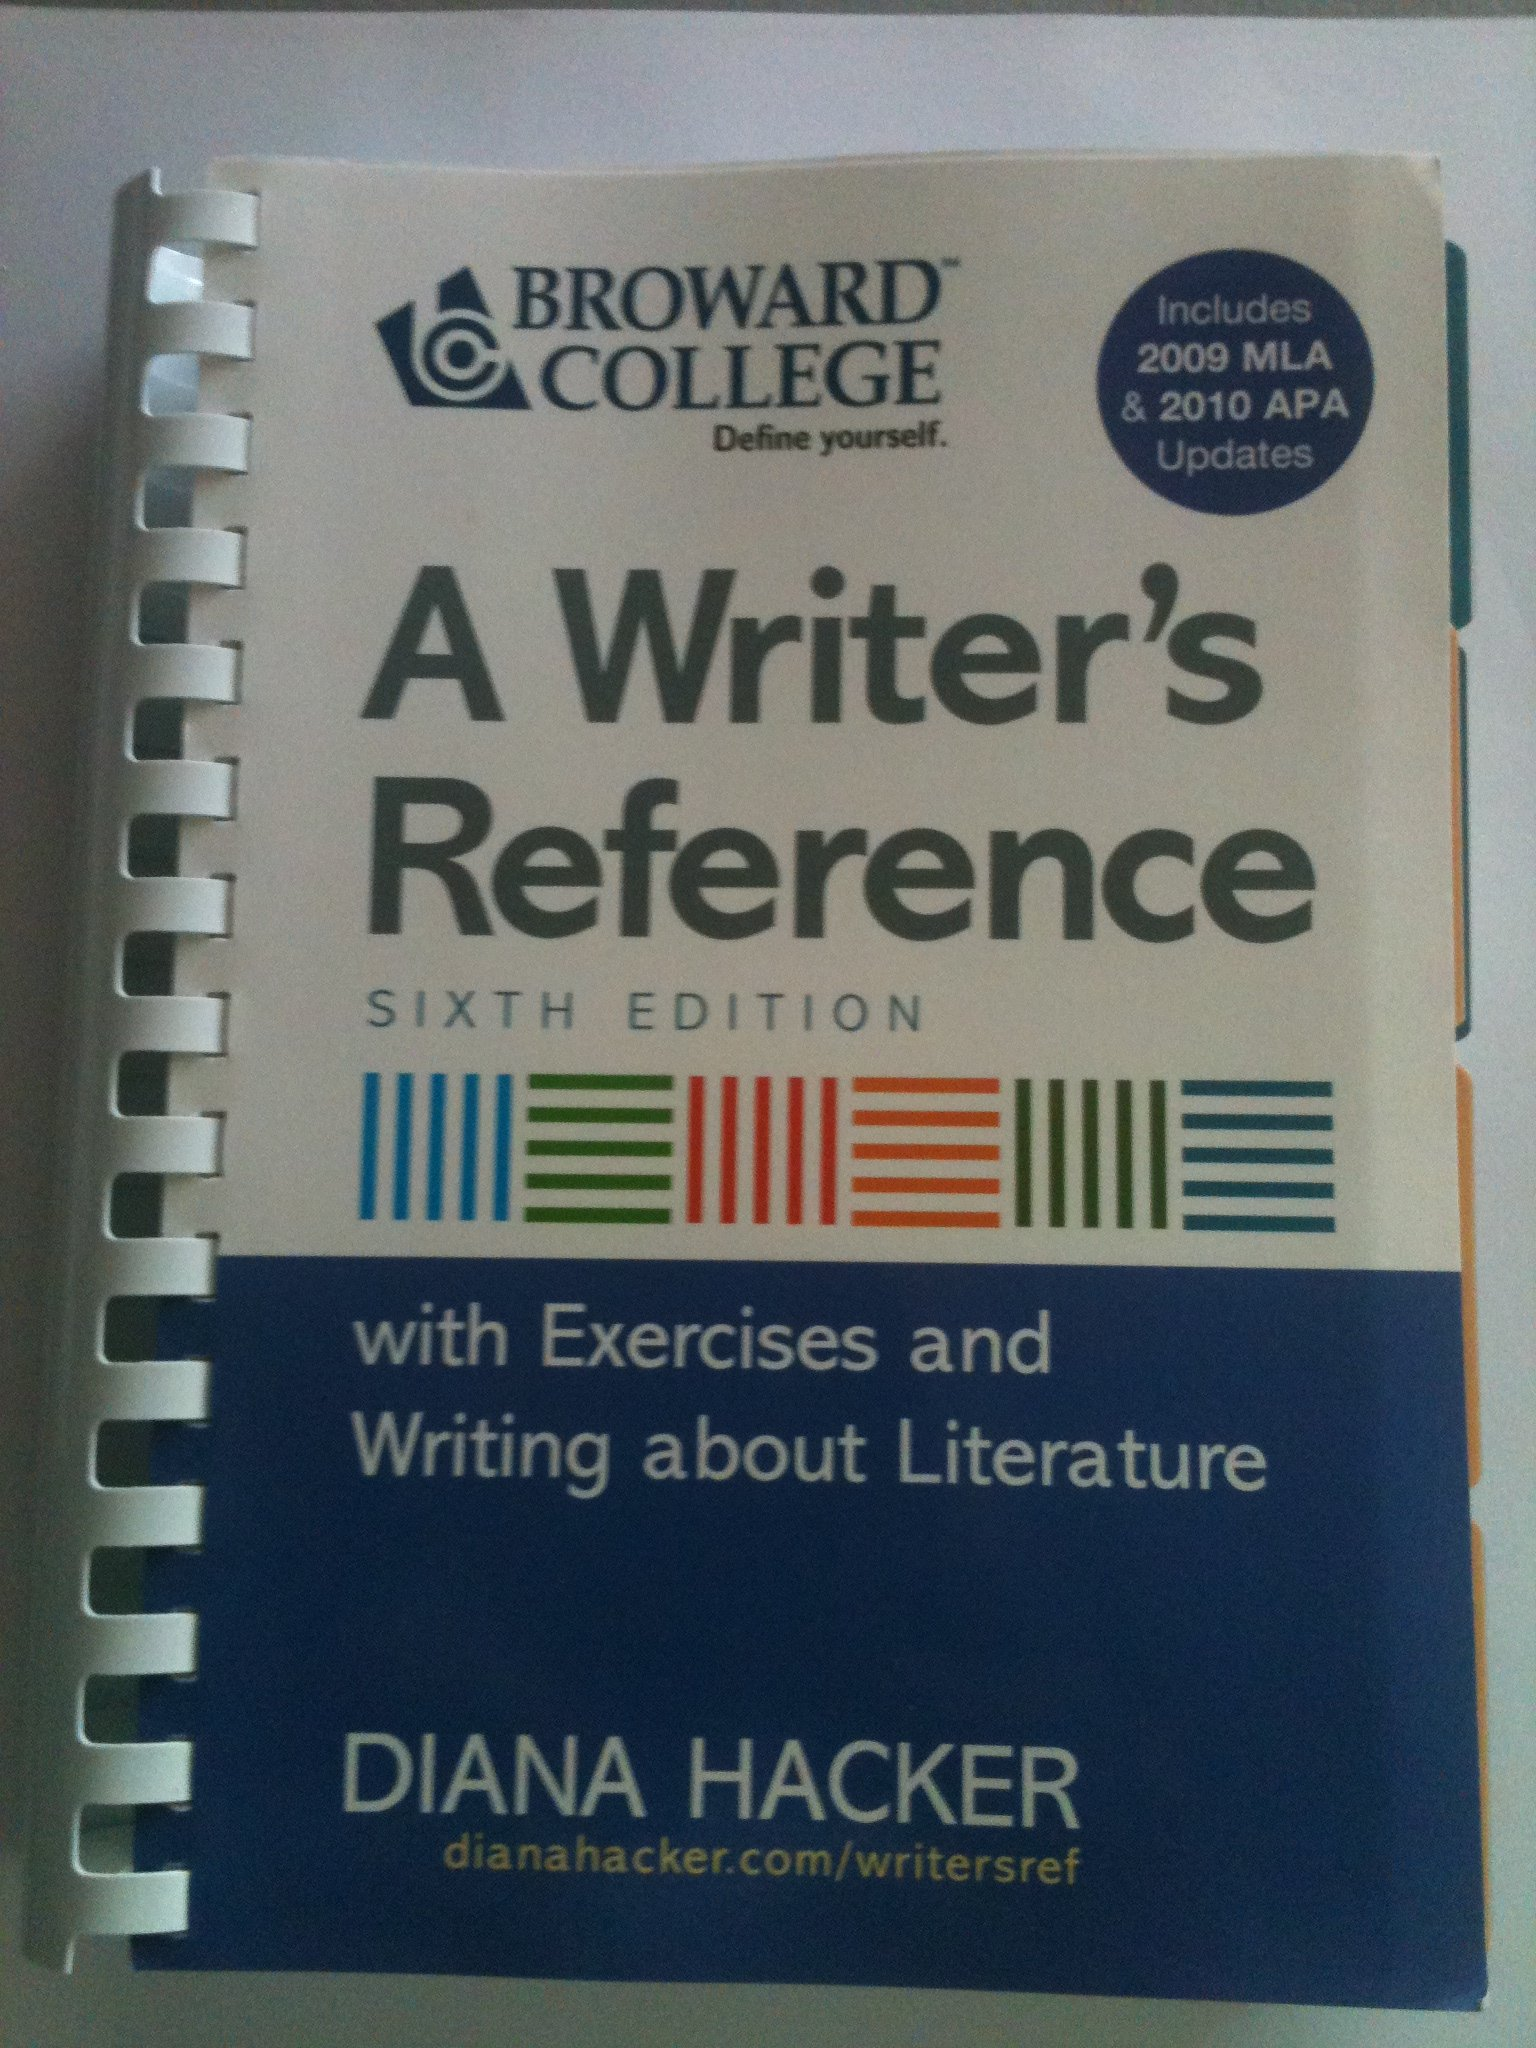 A Writer's Reference with Exercises 6th Edition: 9780312621971: Amazon.com:  Books